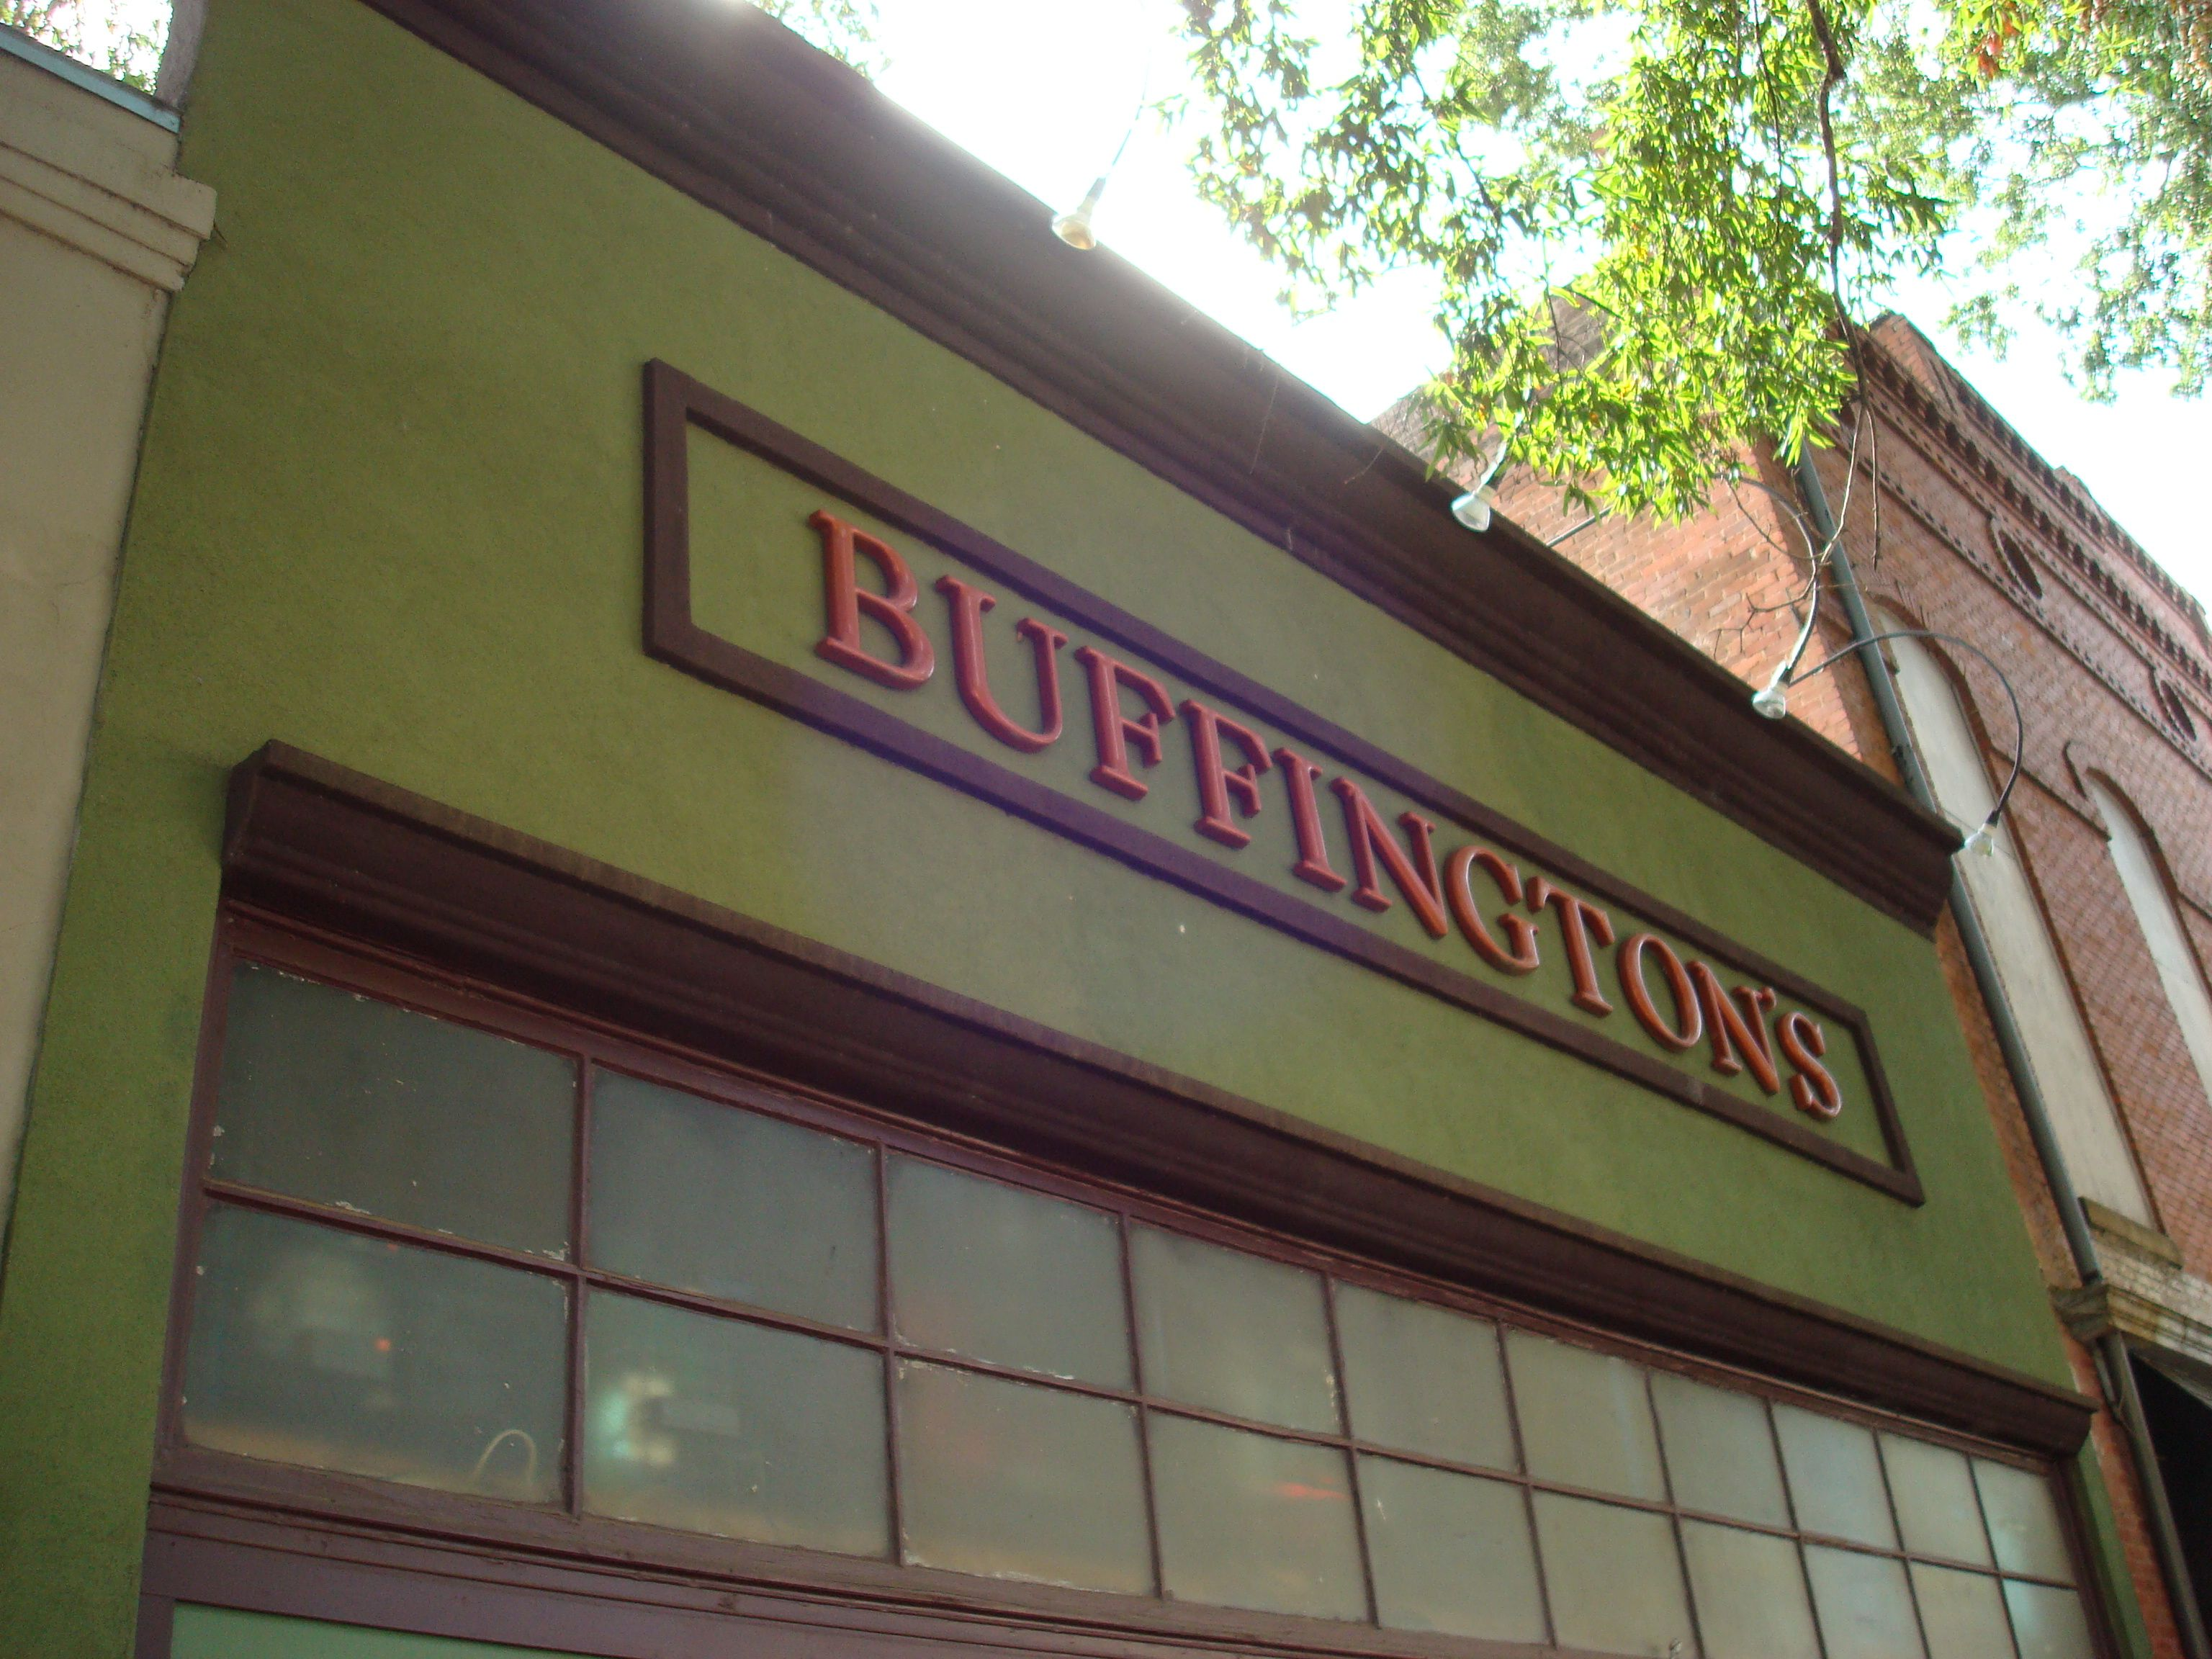 Buffingtons Has The Best Buff Burger And Fried Dill Pickles And More W Hancock Street Milledgeville Ga Milledgeville Fried Dill Pickles Family Legacy